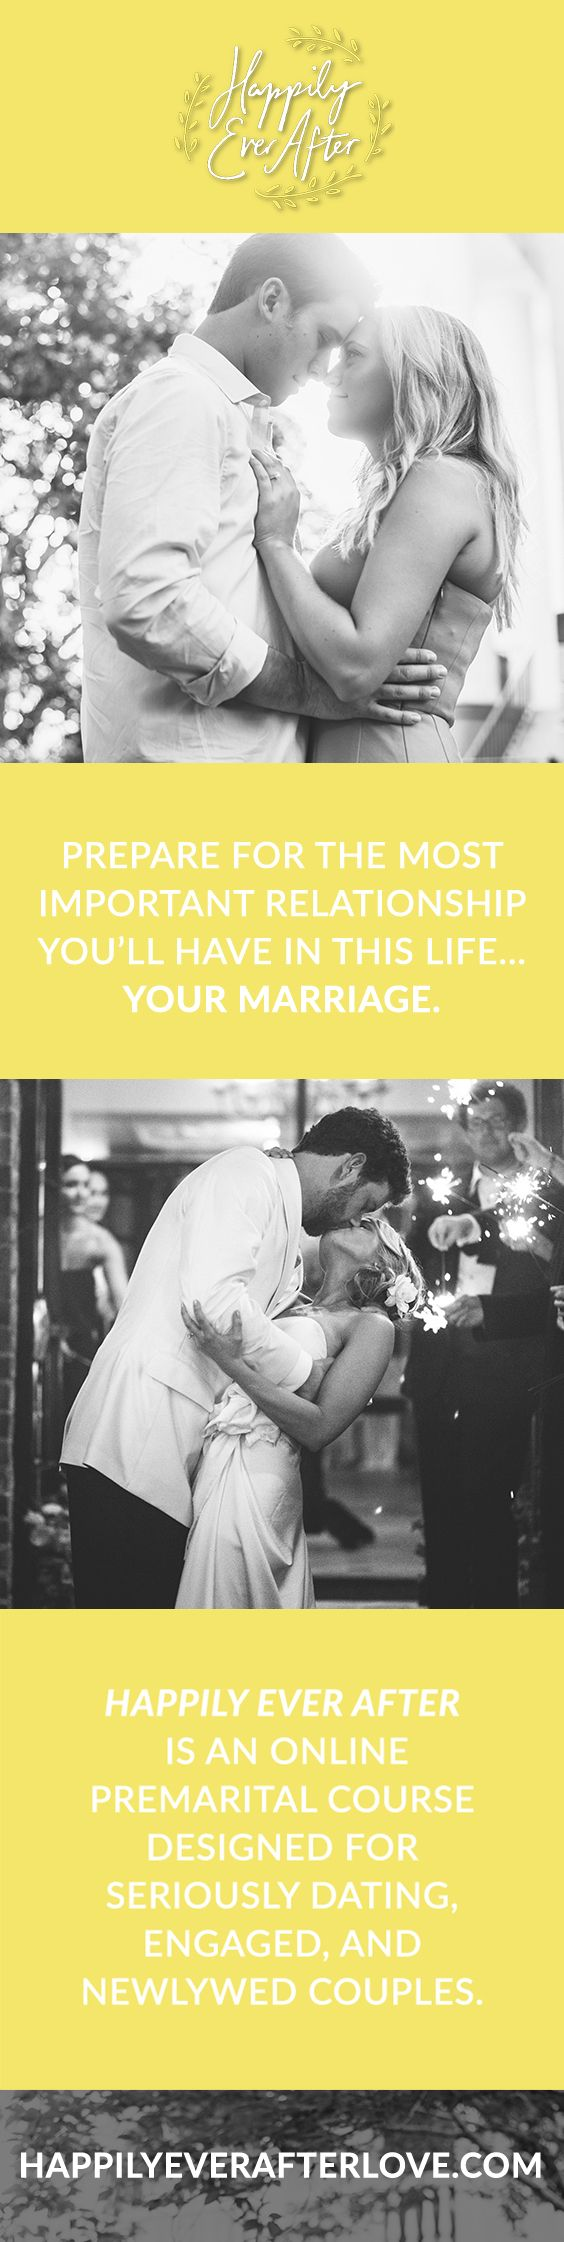 HAPPILY EVER AFTER is an online premarital course designed for seriously dating, engaged, and newlywed couples covering topics like money, intimacy, communications, conflict & more! ⇨ www.happilyeverafterlove.com